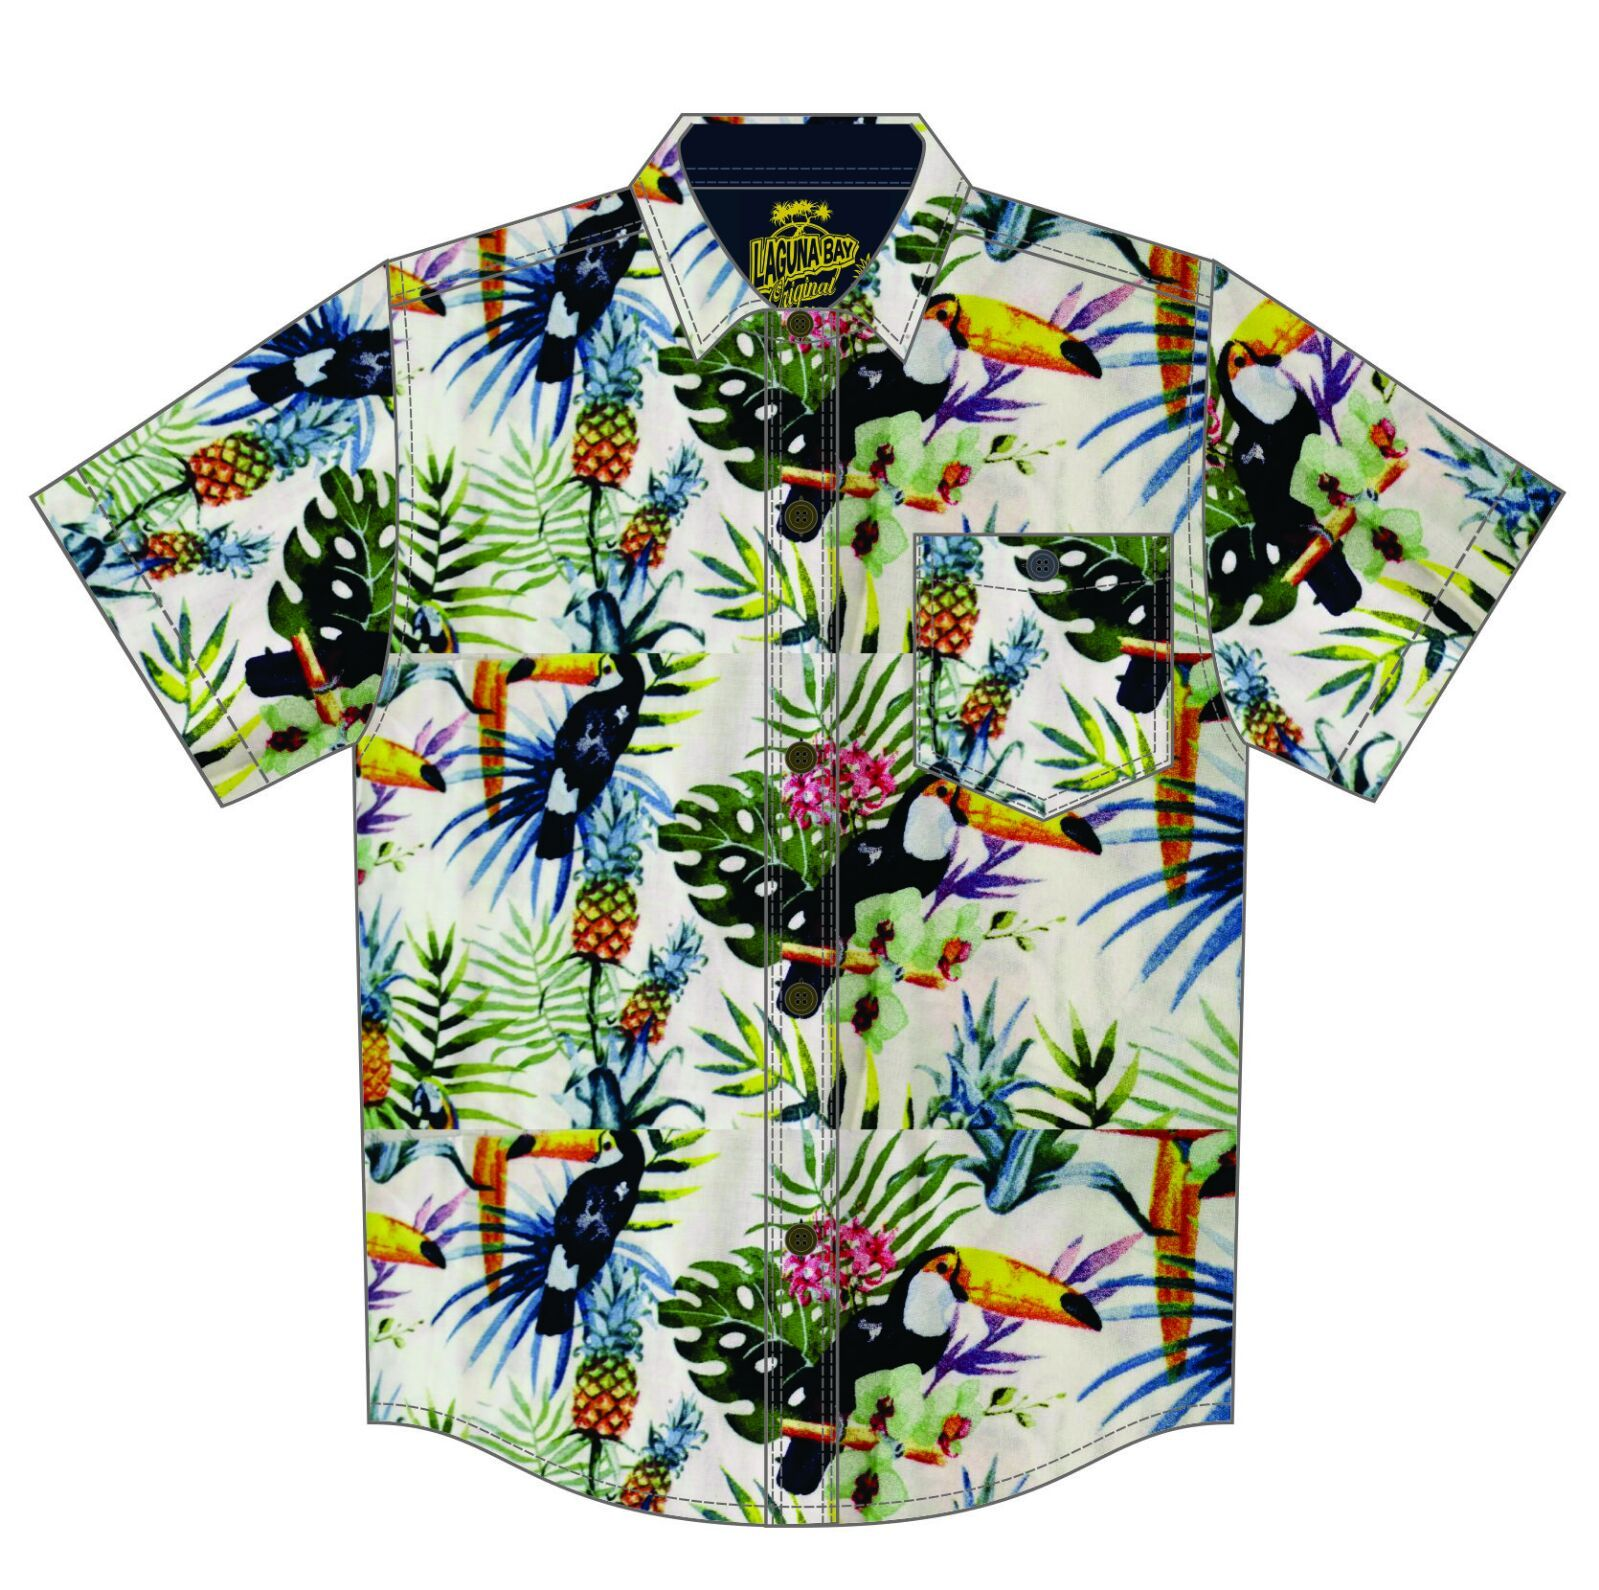 Laguna Bay Tropical Shirt - The White Toucan GROMS CLOTHING Laguna Bay